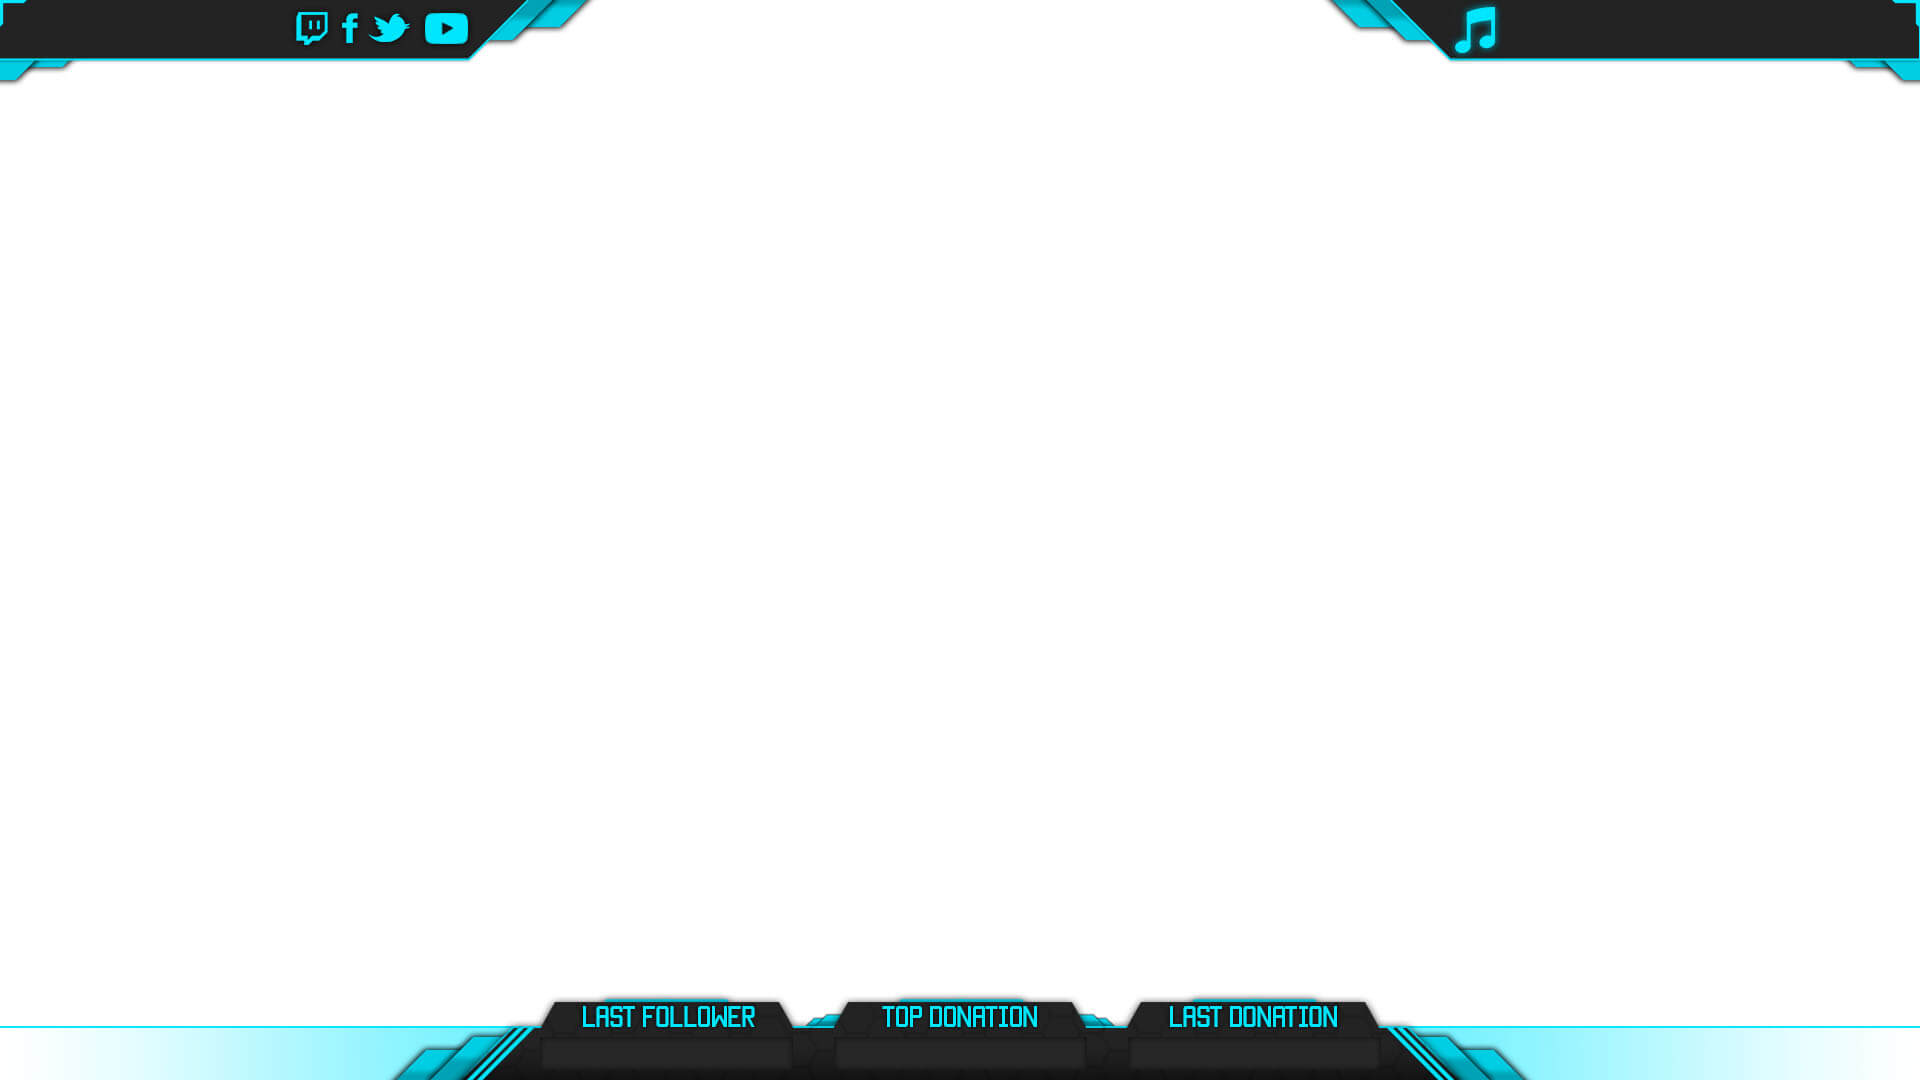 how to make twitch background black